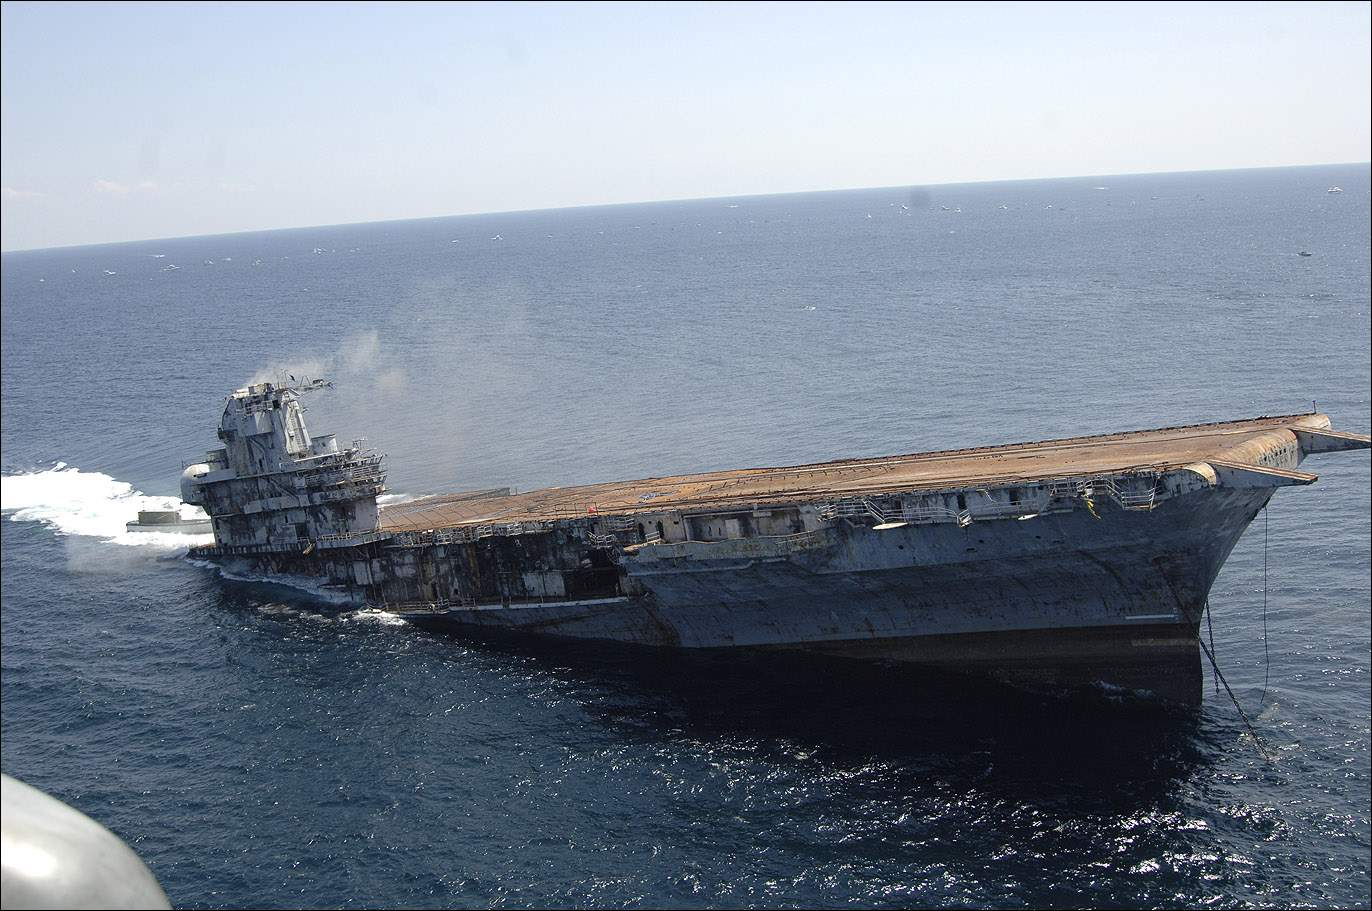 America's Carrier Fleet Cited as Vulnerable | New Wars